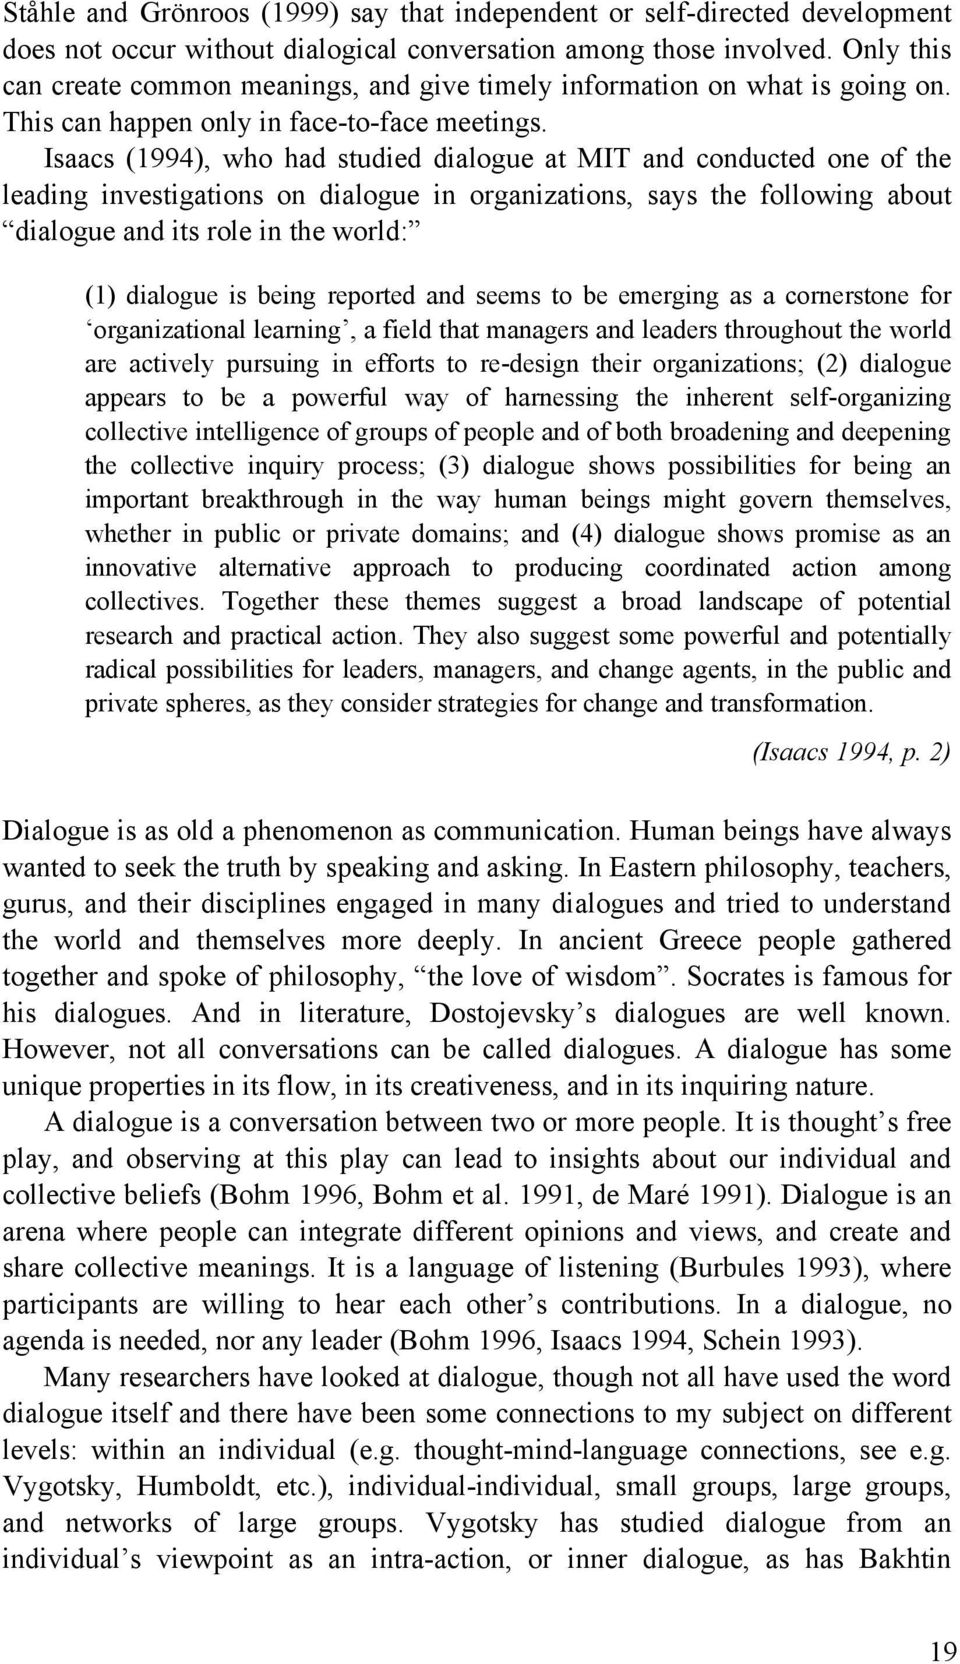 Isaacs (1994), who had studied dialogue at MIT and conducted one of the leading investigations on dialogue in organizations, says the following about dialogue and its role in the world: (1) dialogue